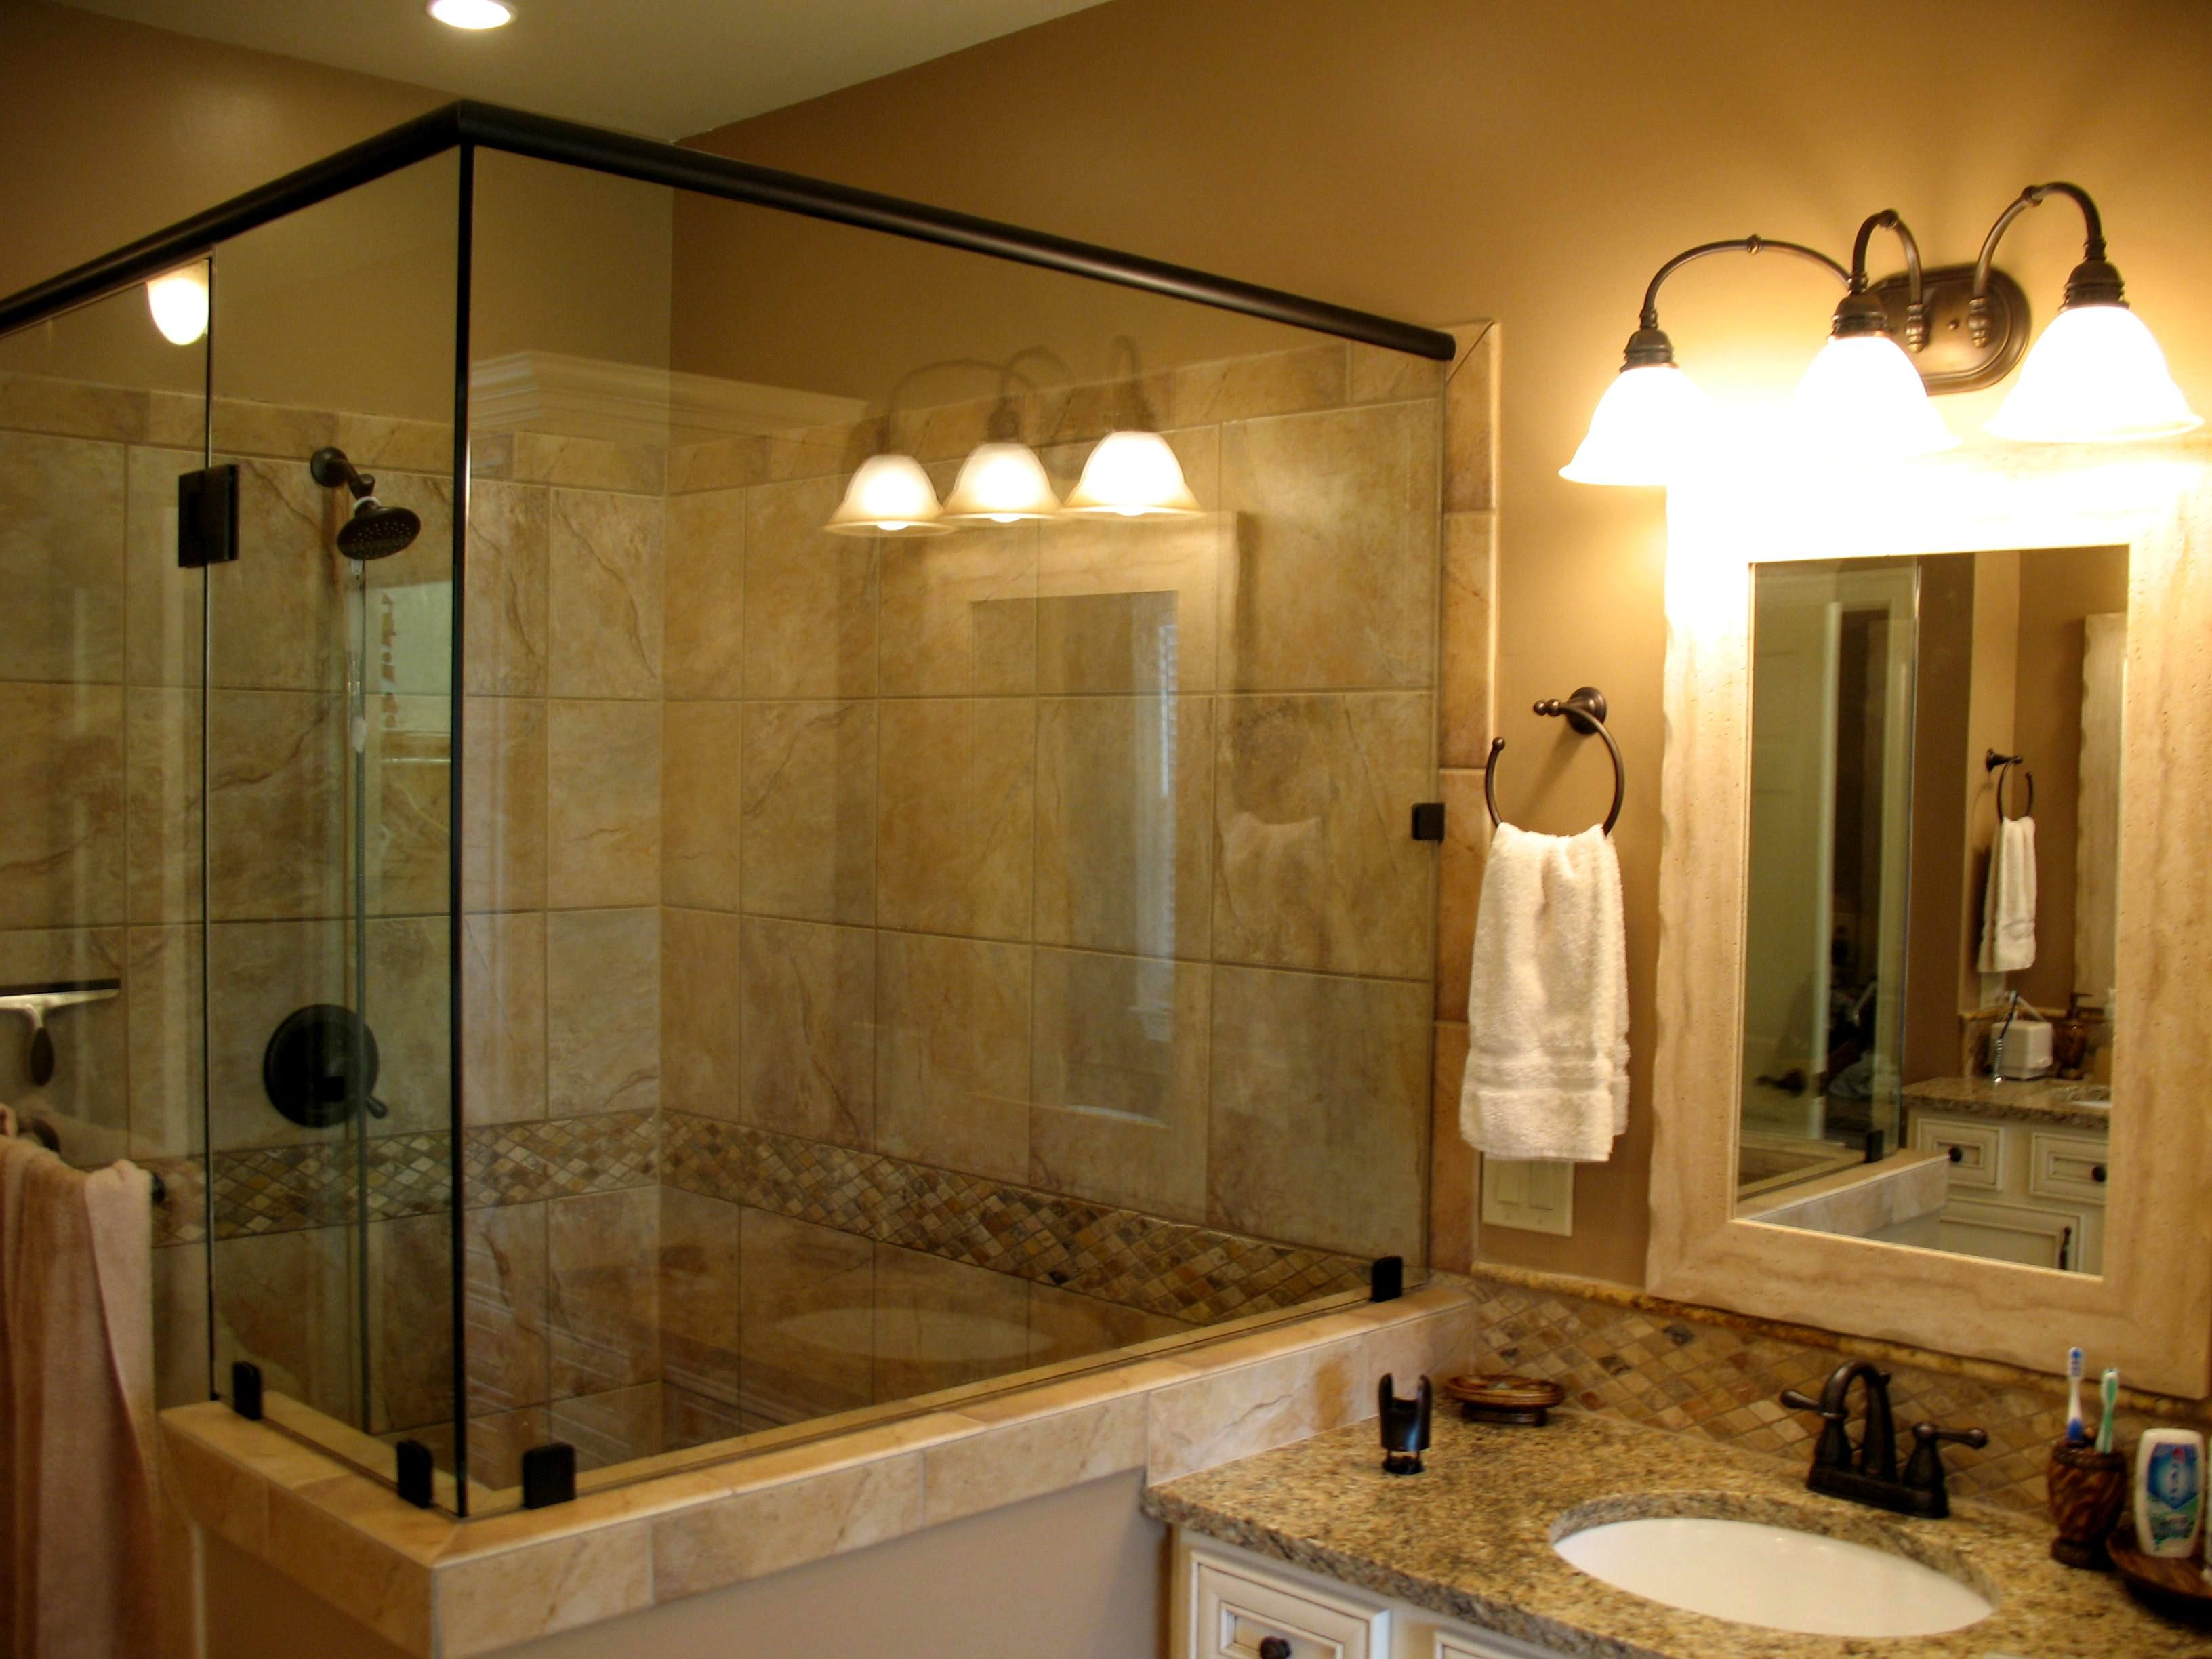 master bathroom shower ideas to get ideas how to redecorate your bathroom with astounding layout 7 - Bathroom Remodeling Design